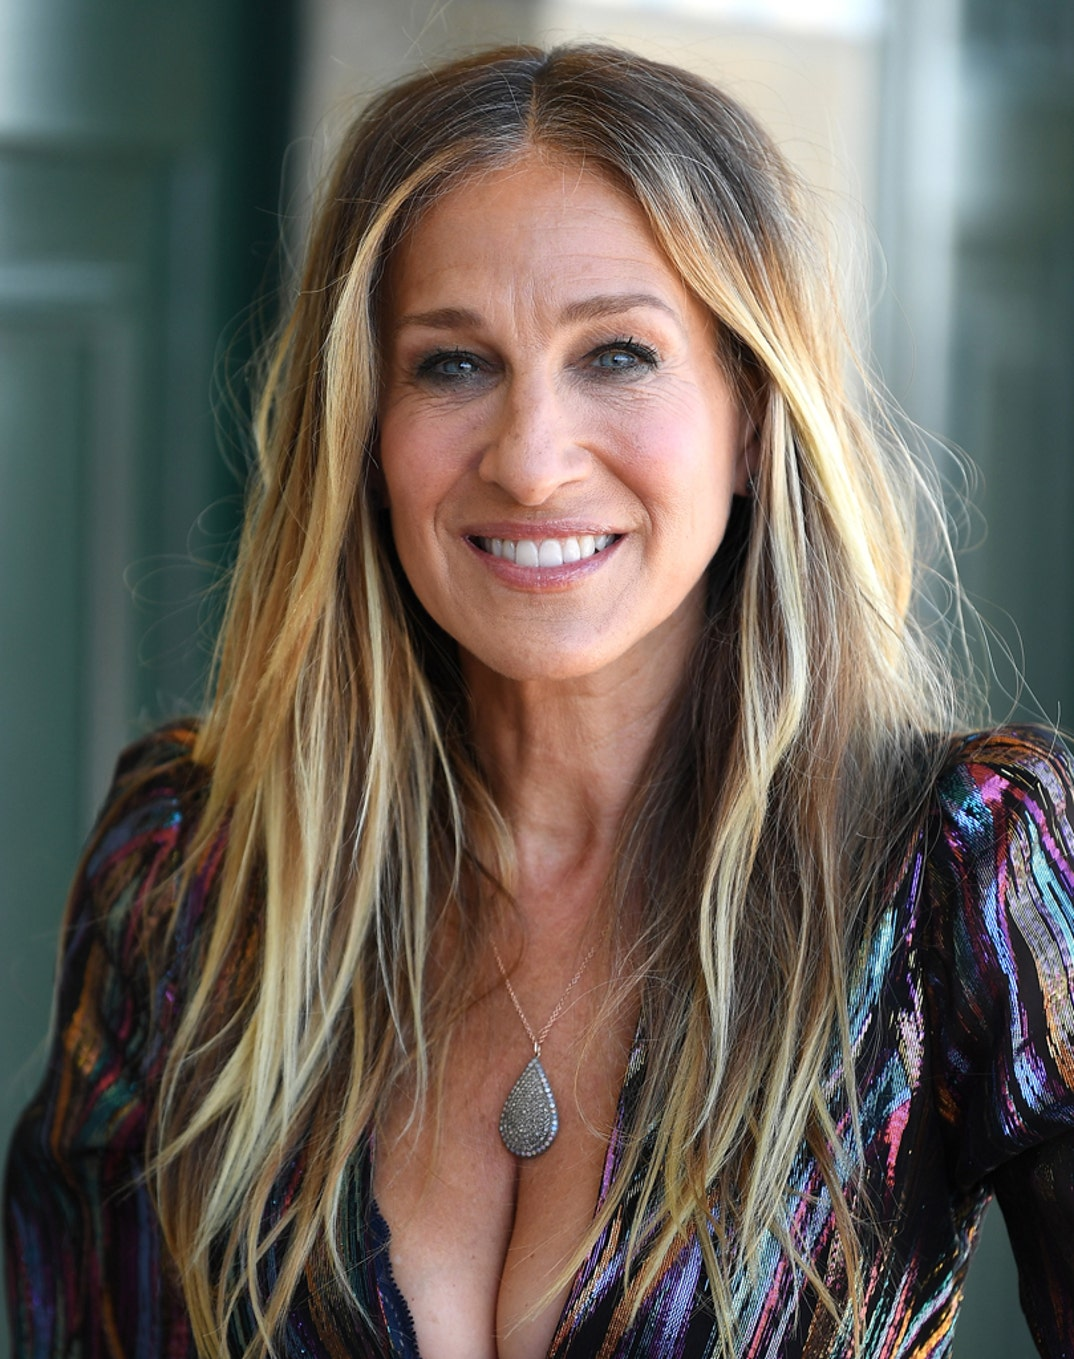 Sarah Jessica Parker is now 53 years old